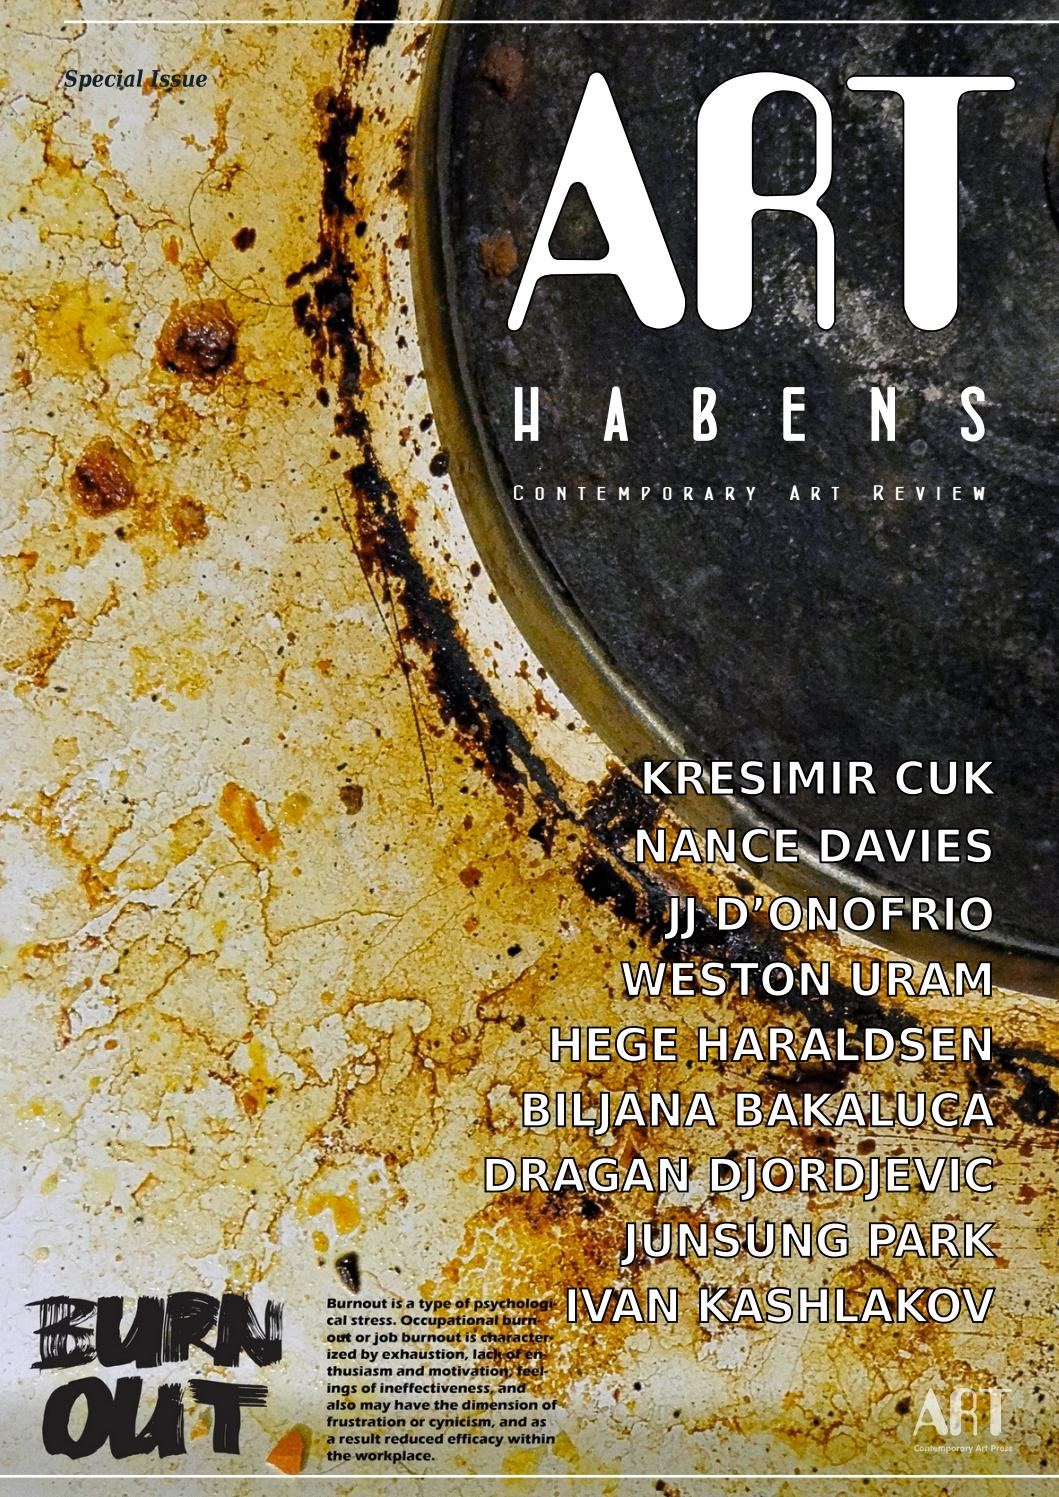 ART Habens Art Review // Special Issue by ART Habens - issuu